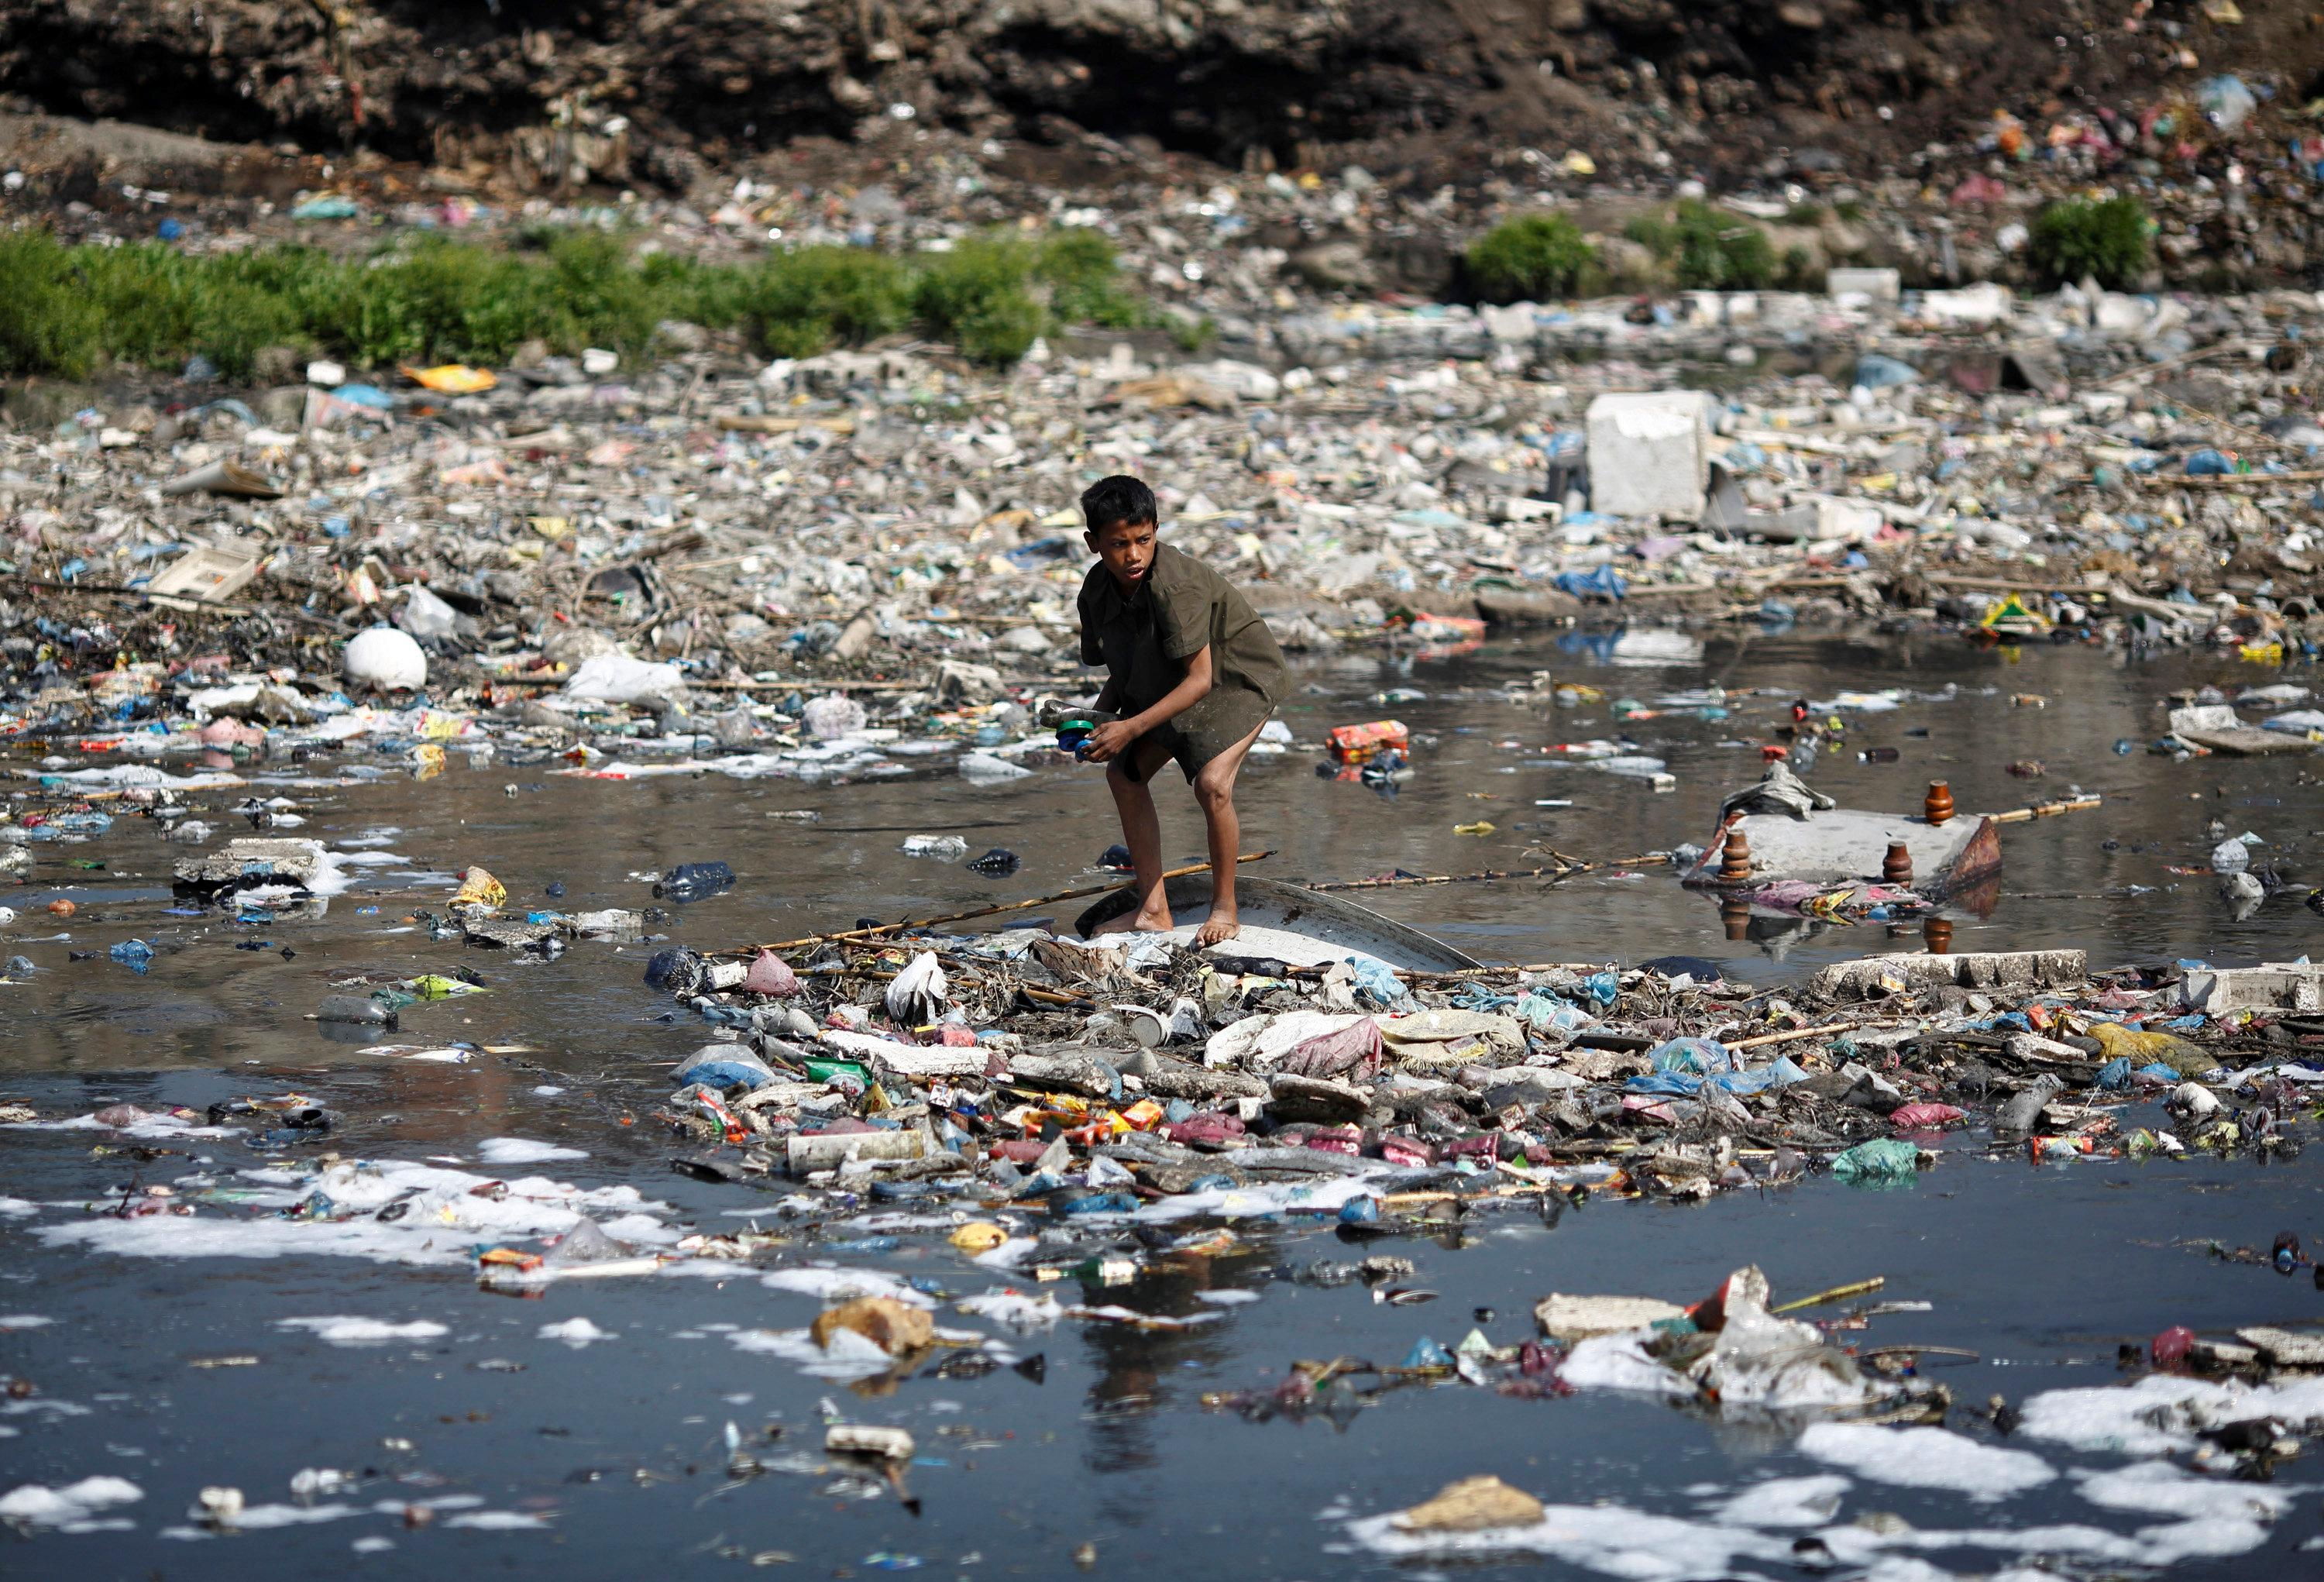 A boy looks for plastic bottles at the polluted Bagmati River in Kathmandu March 22, 2013. Navesh Chitrakar